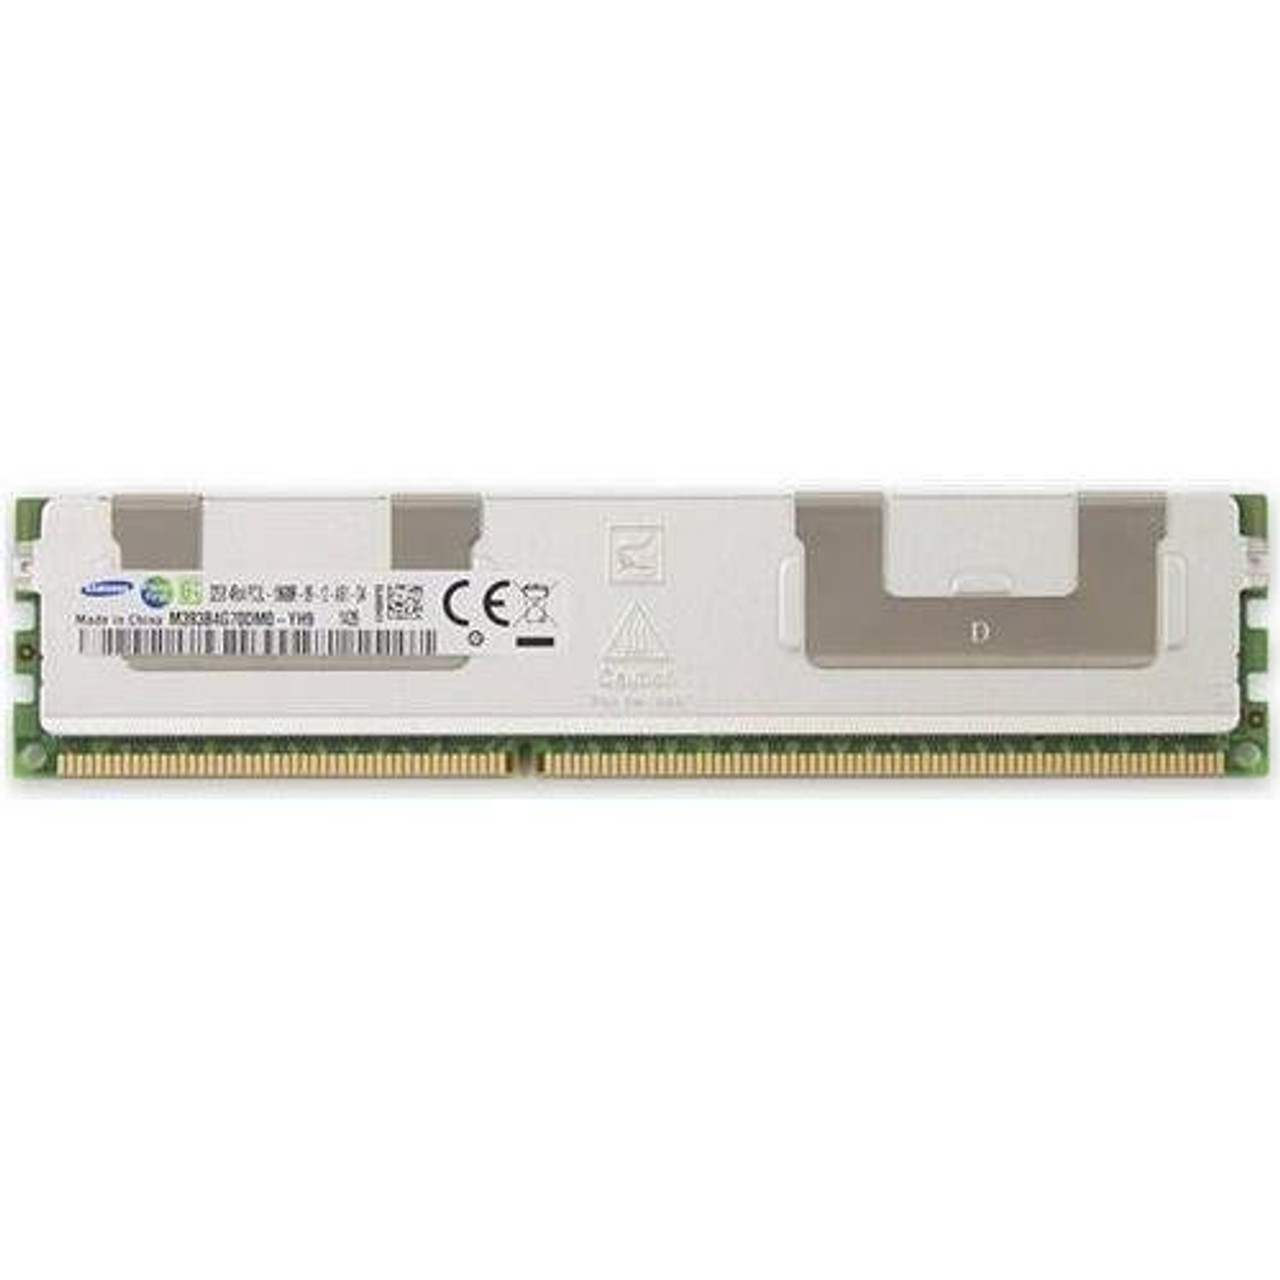 Samsung M393B4G70DM0-YH9 32GB 10600R DDR3-1333  Server Memory 1.35V